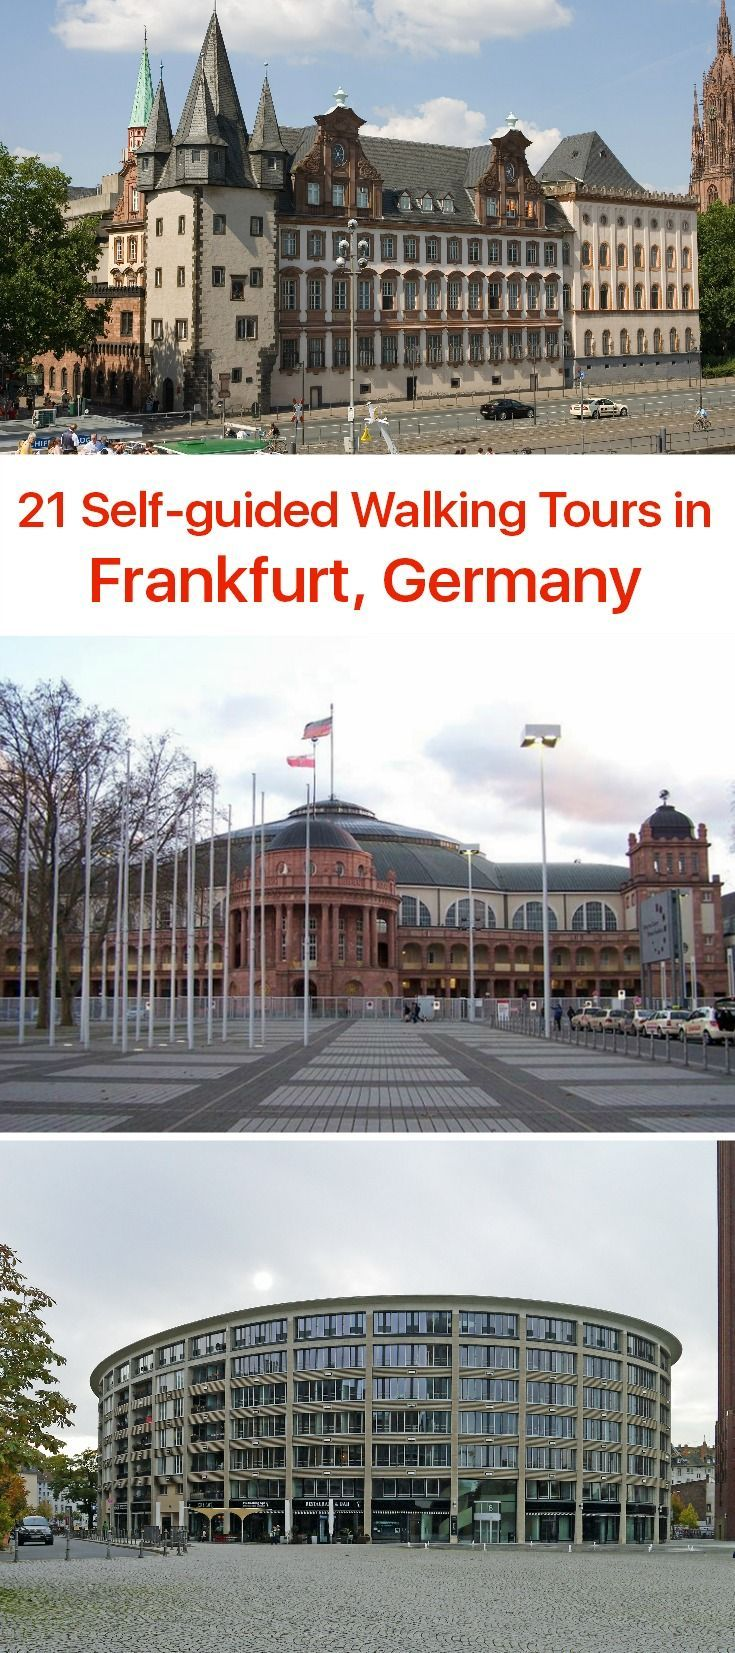 One of Germany's largest cities, Frankfurt is the birthplace of Goethe and a major European financial center. Home to the annual Frankfurt Motor Show and Frankfurt Book Fair, the city enjoys much popularity with international visitors each year.